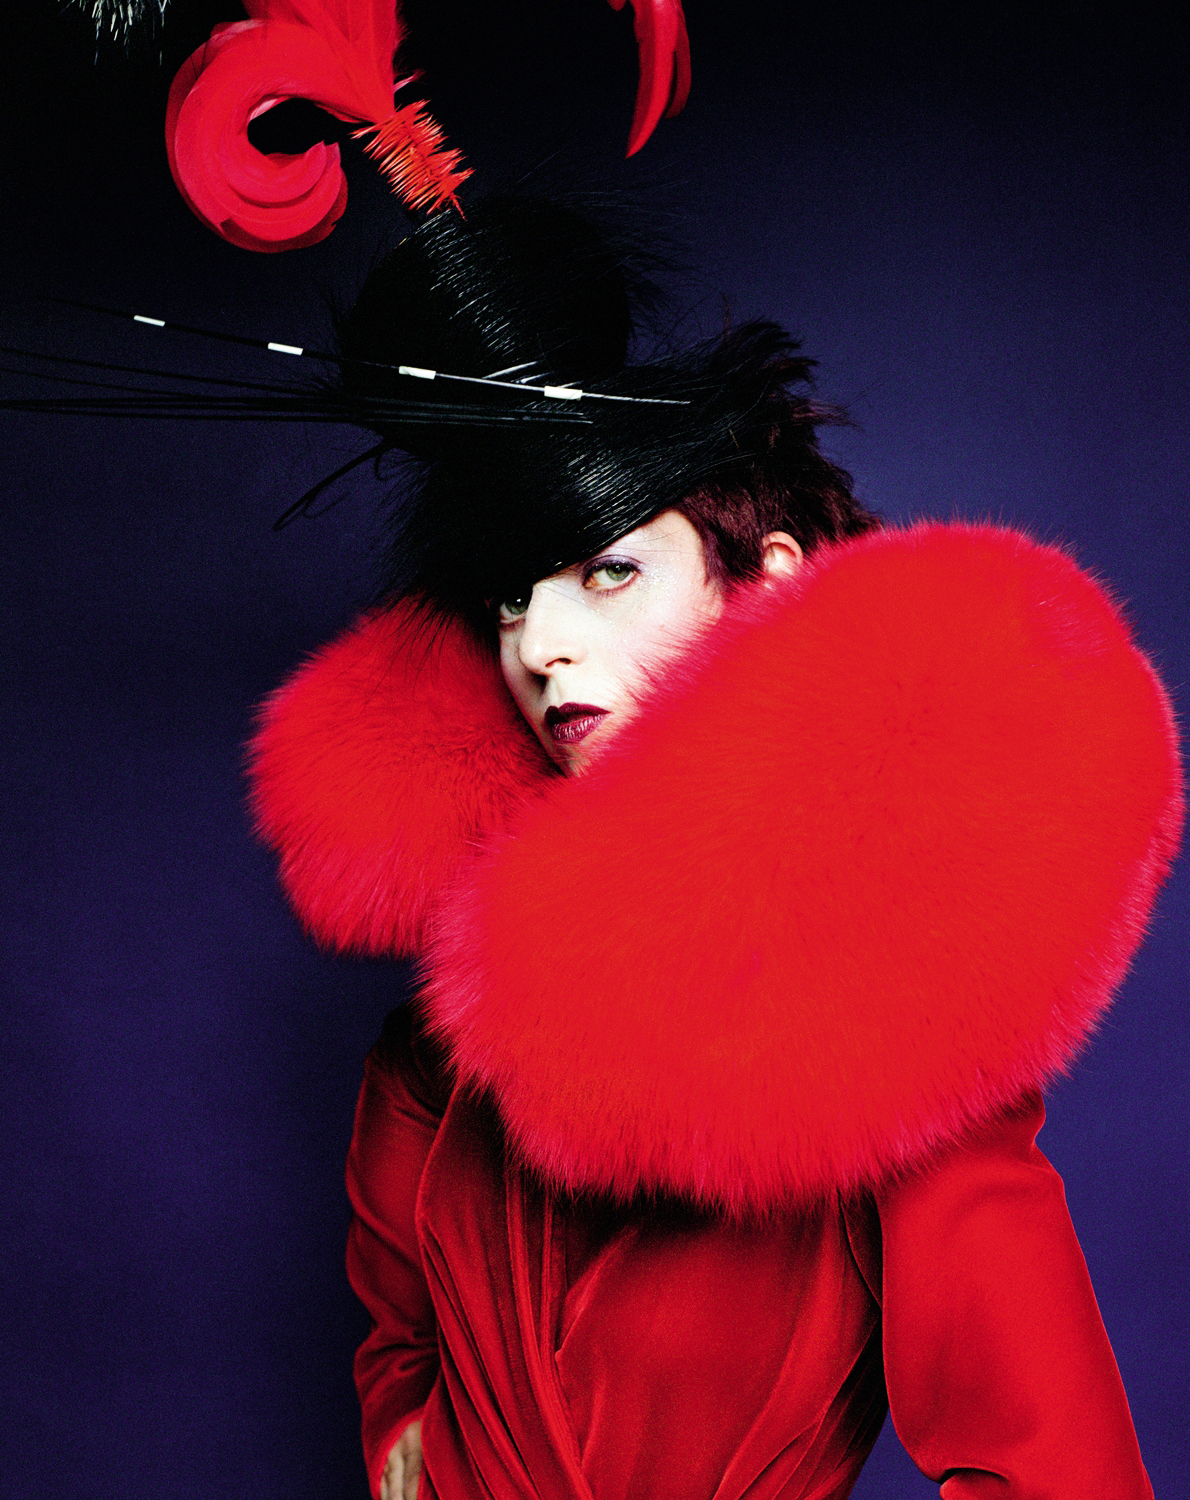 Isabella Blow helped launch the careers of designer Alexander McQueen and milliner Philip Treacy (Picture: Mario Testino)